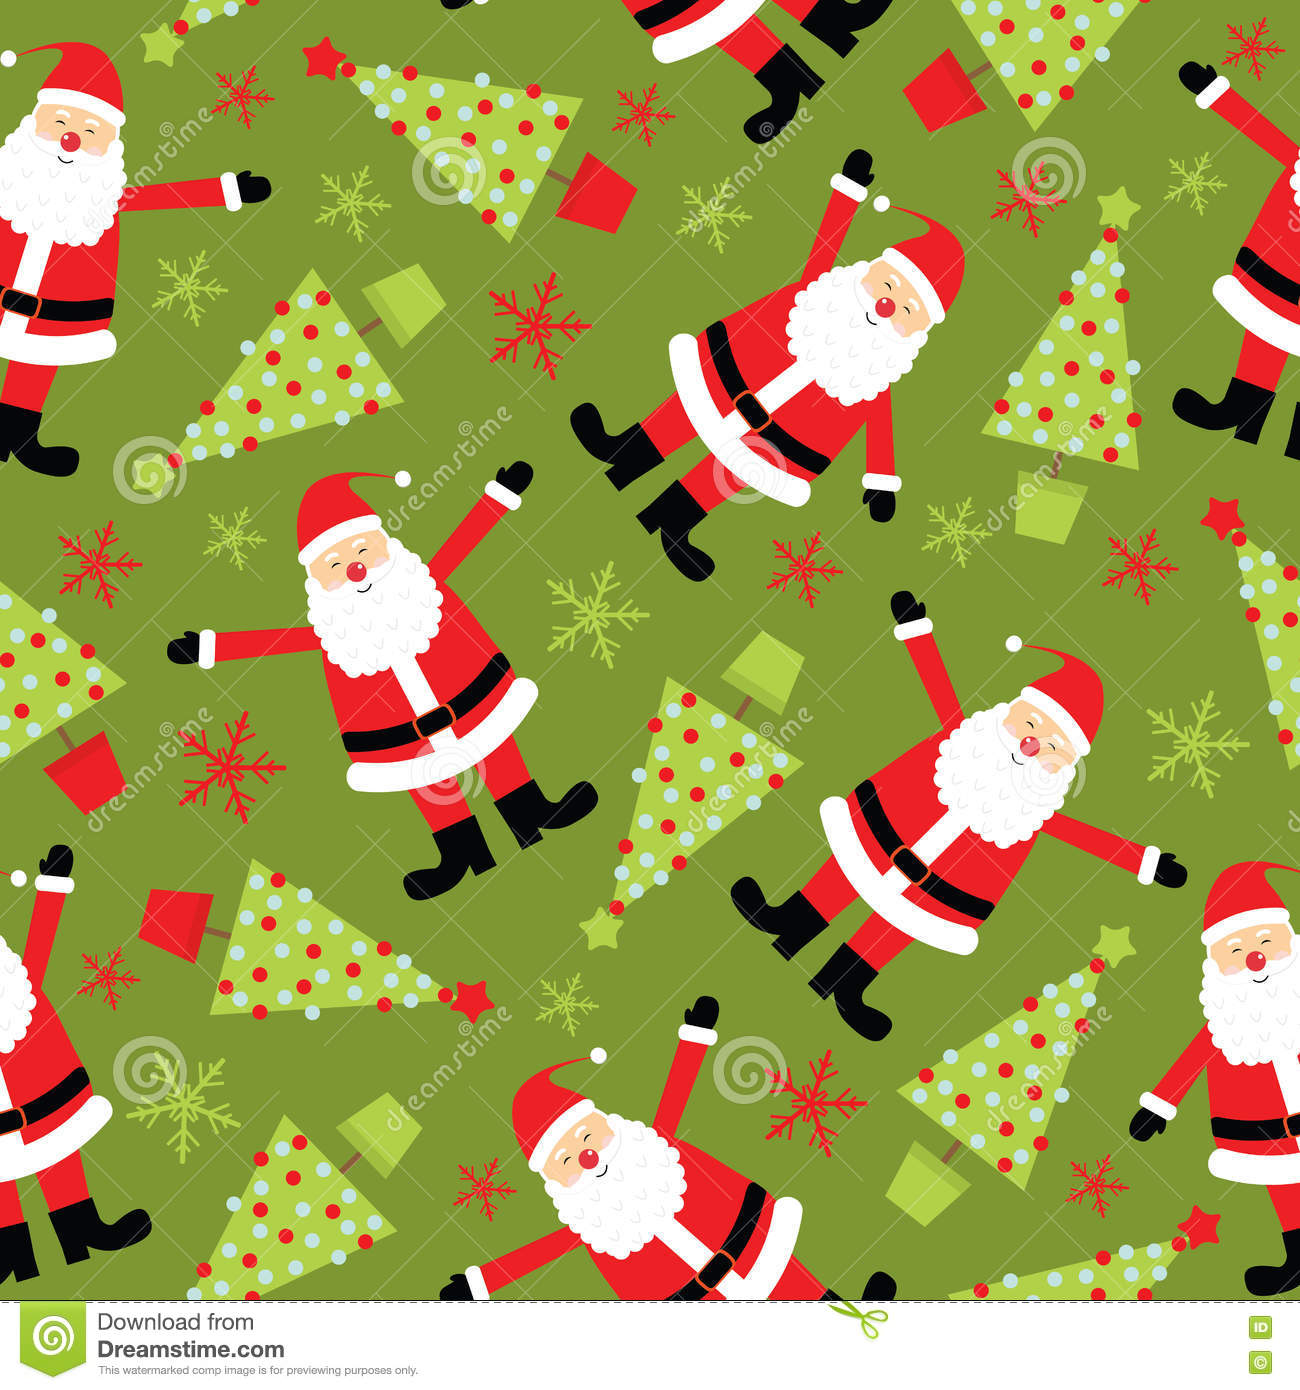 Seamless Background Of Christmas Illustration With Cute